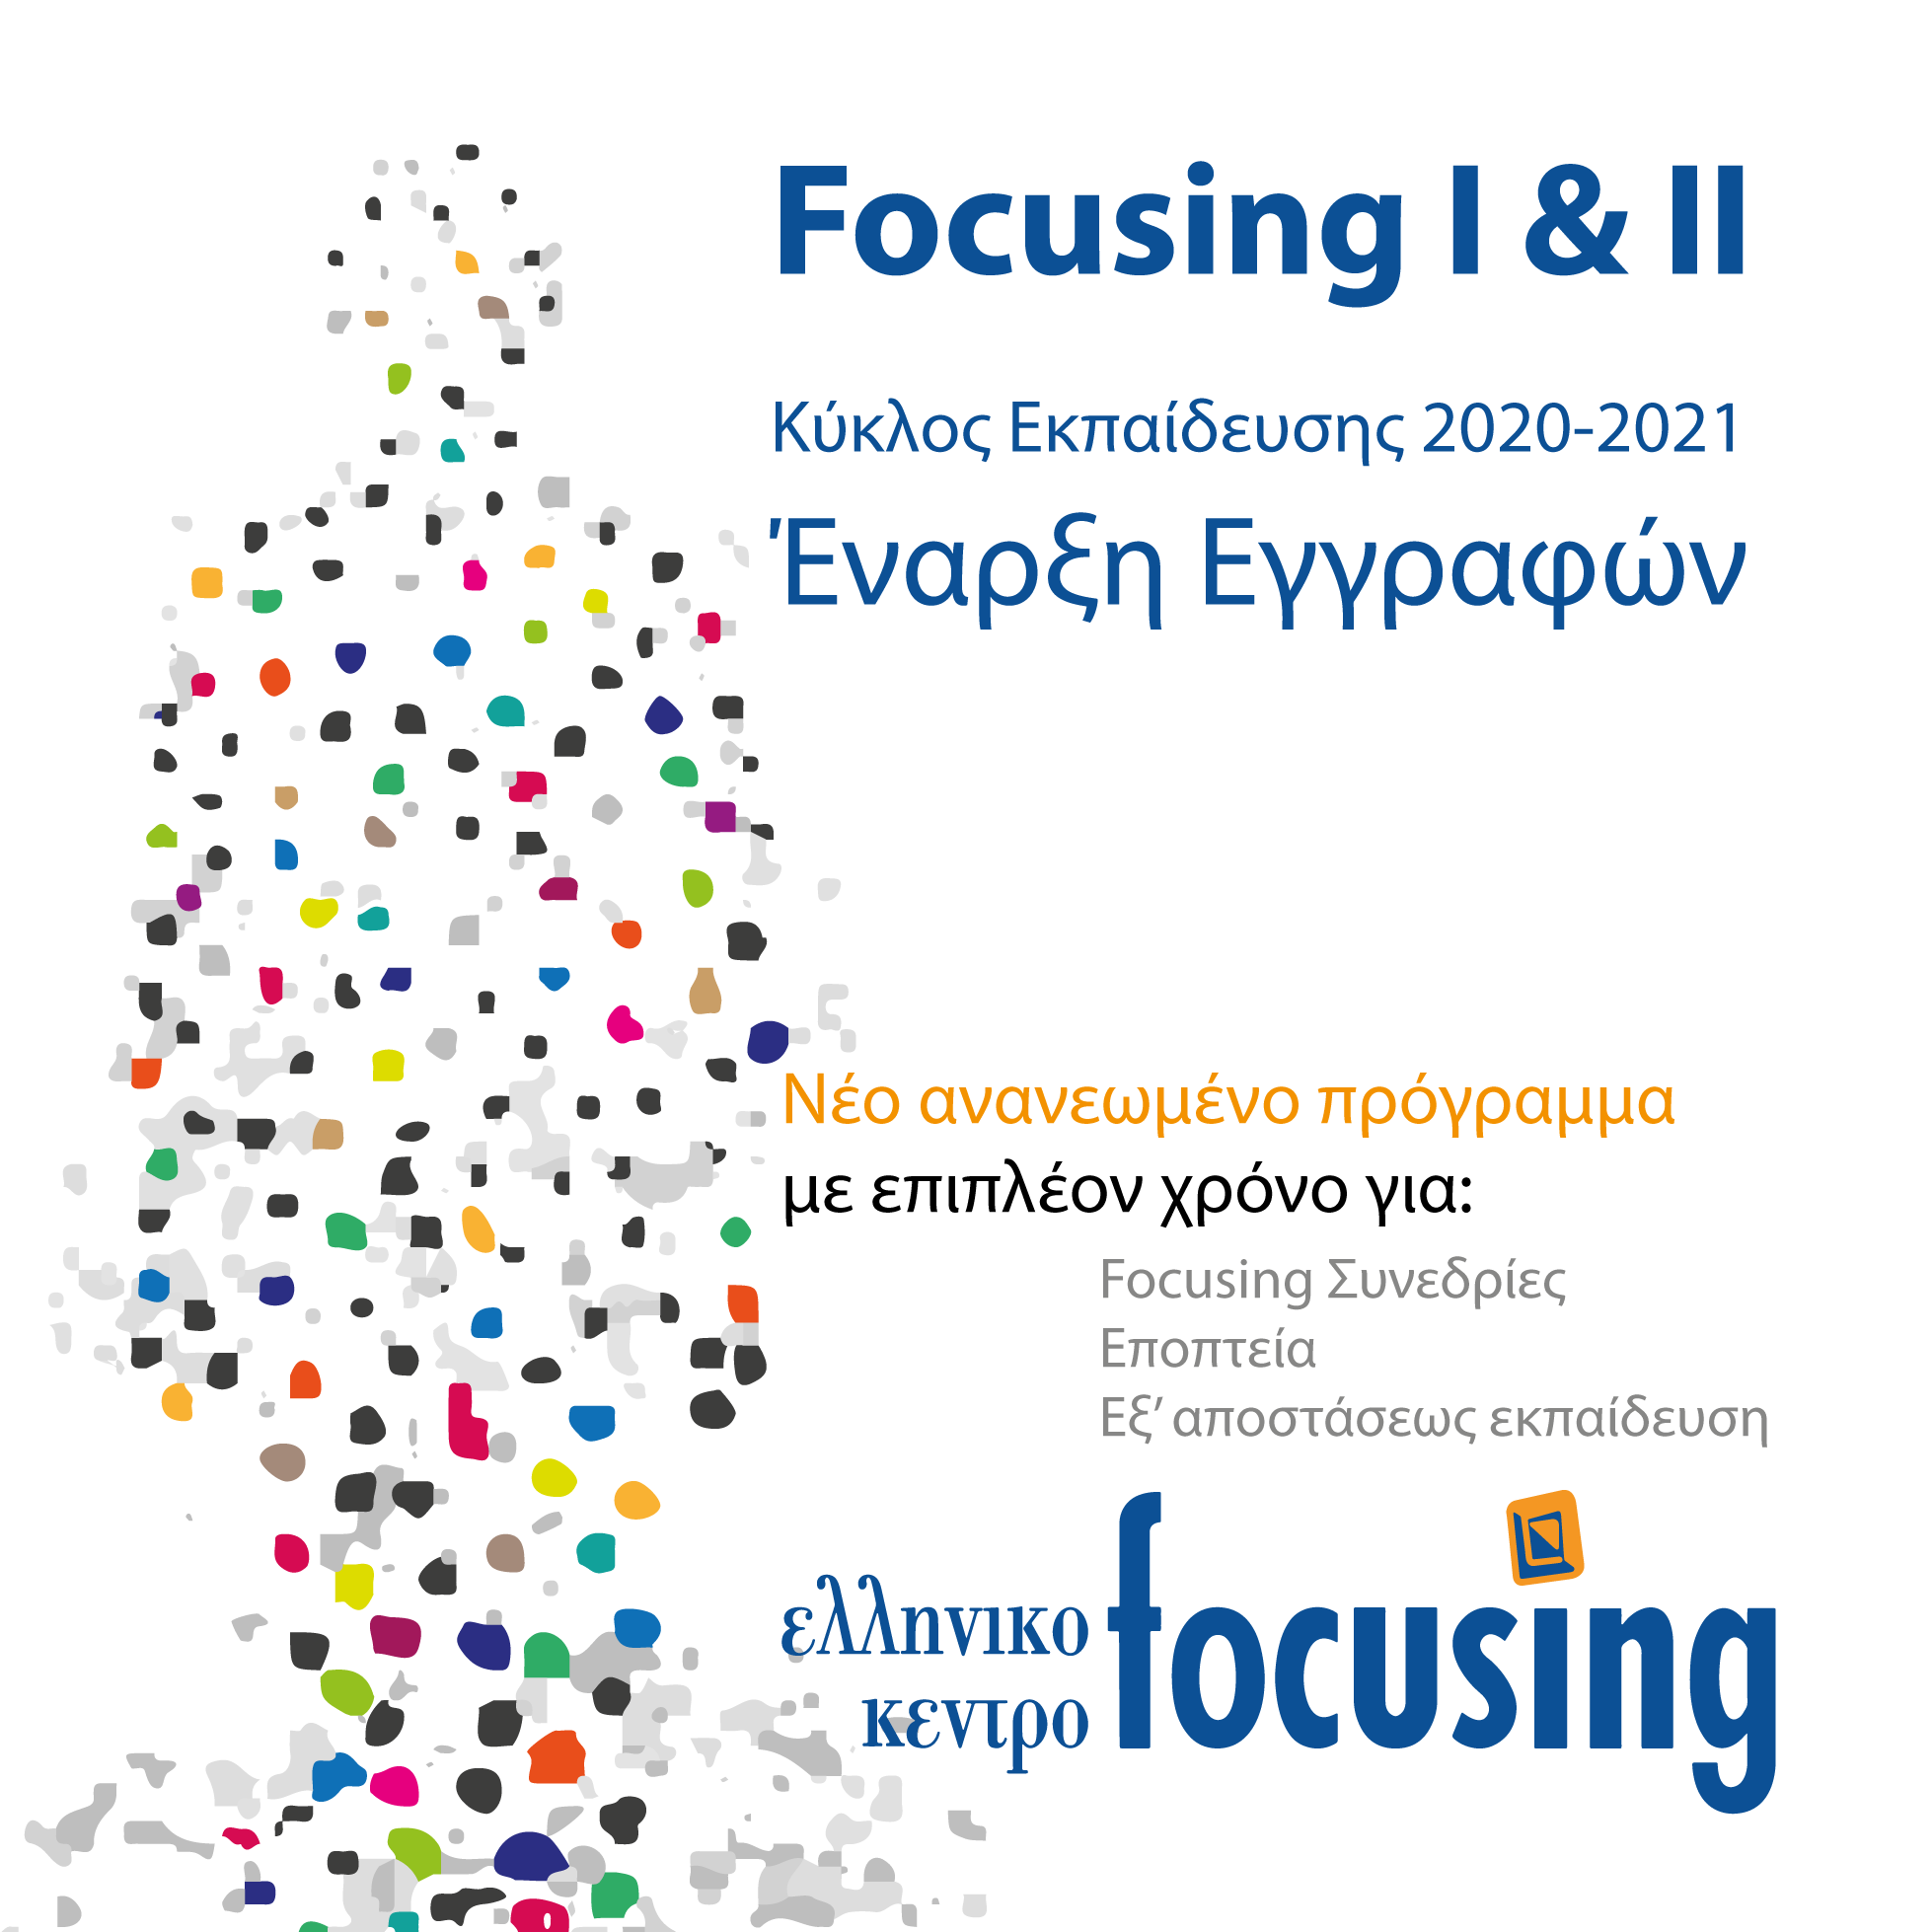 Focusing I & II